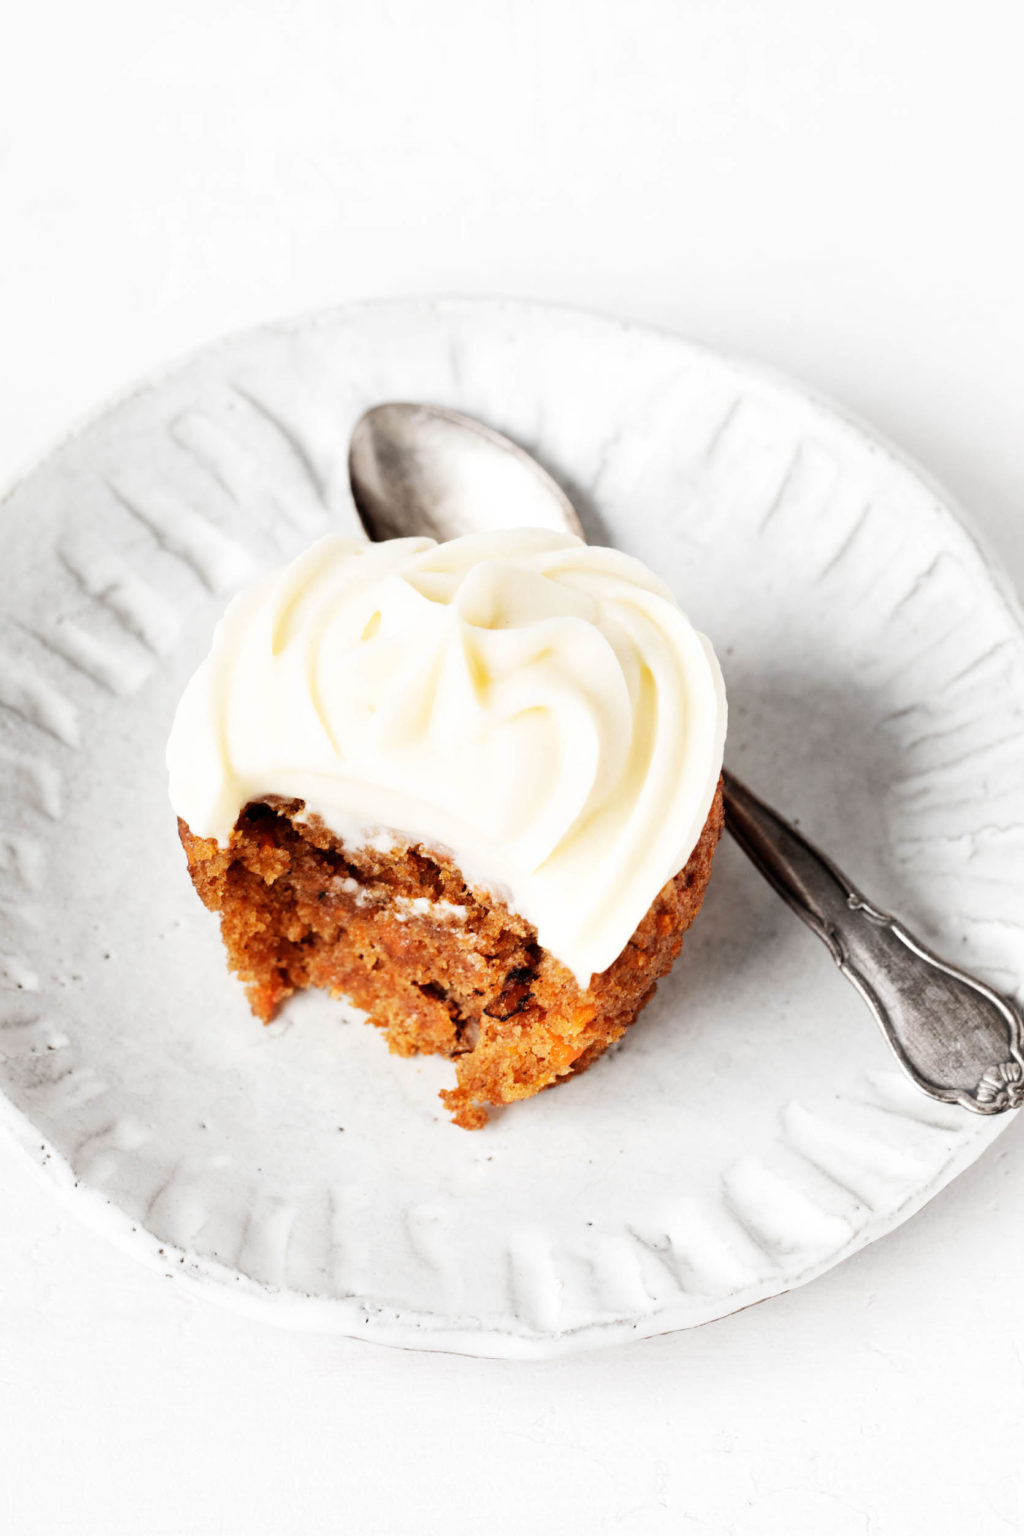 A single vegan carrot cake cupcake rests on a small, ceramic white plate. There's a small spoon beside the cupcake.